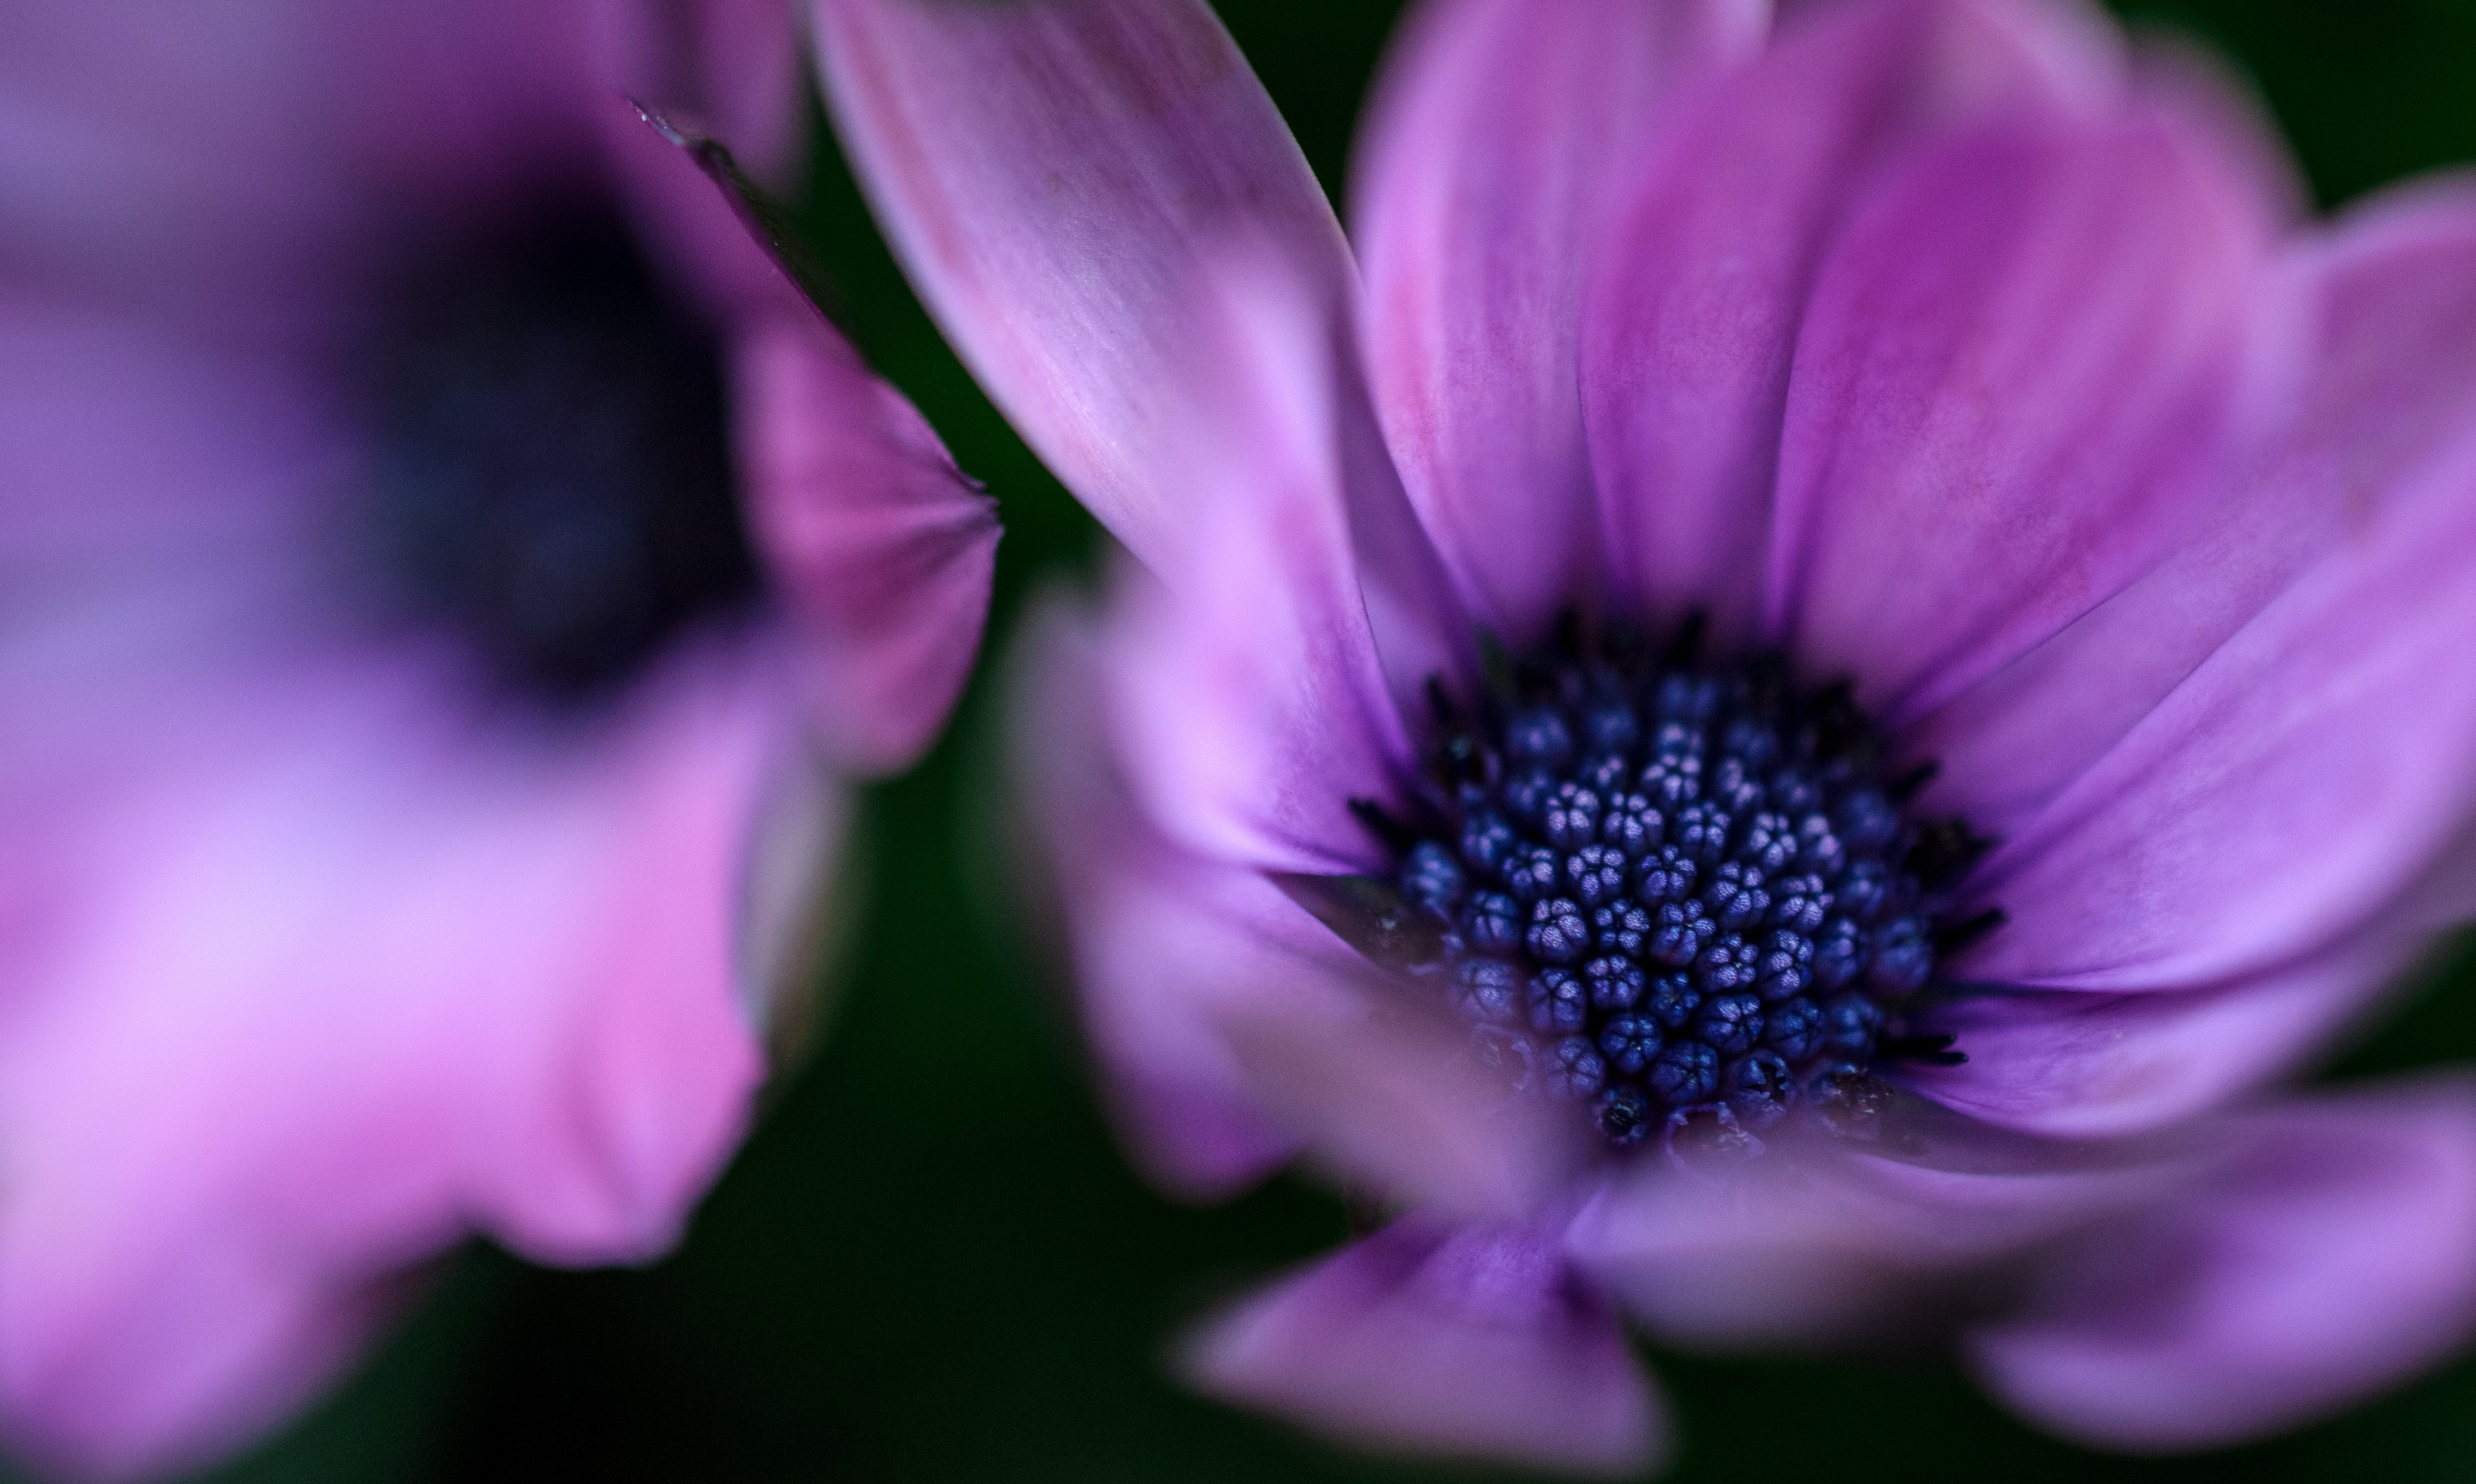 A macro shot of purple flowers with dark blue centers